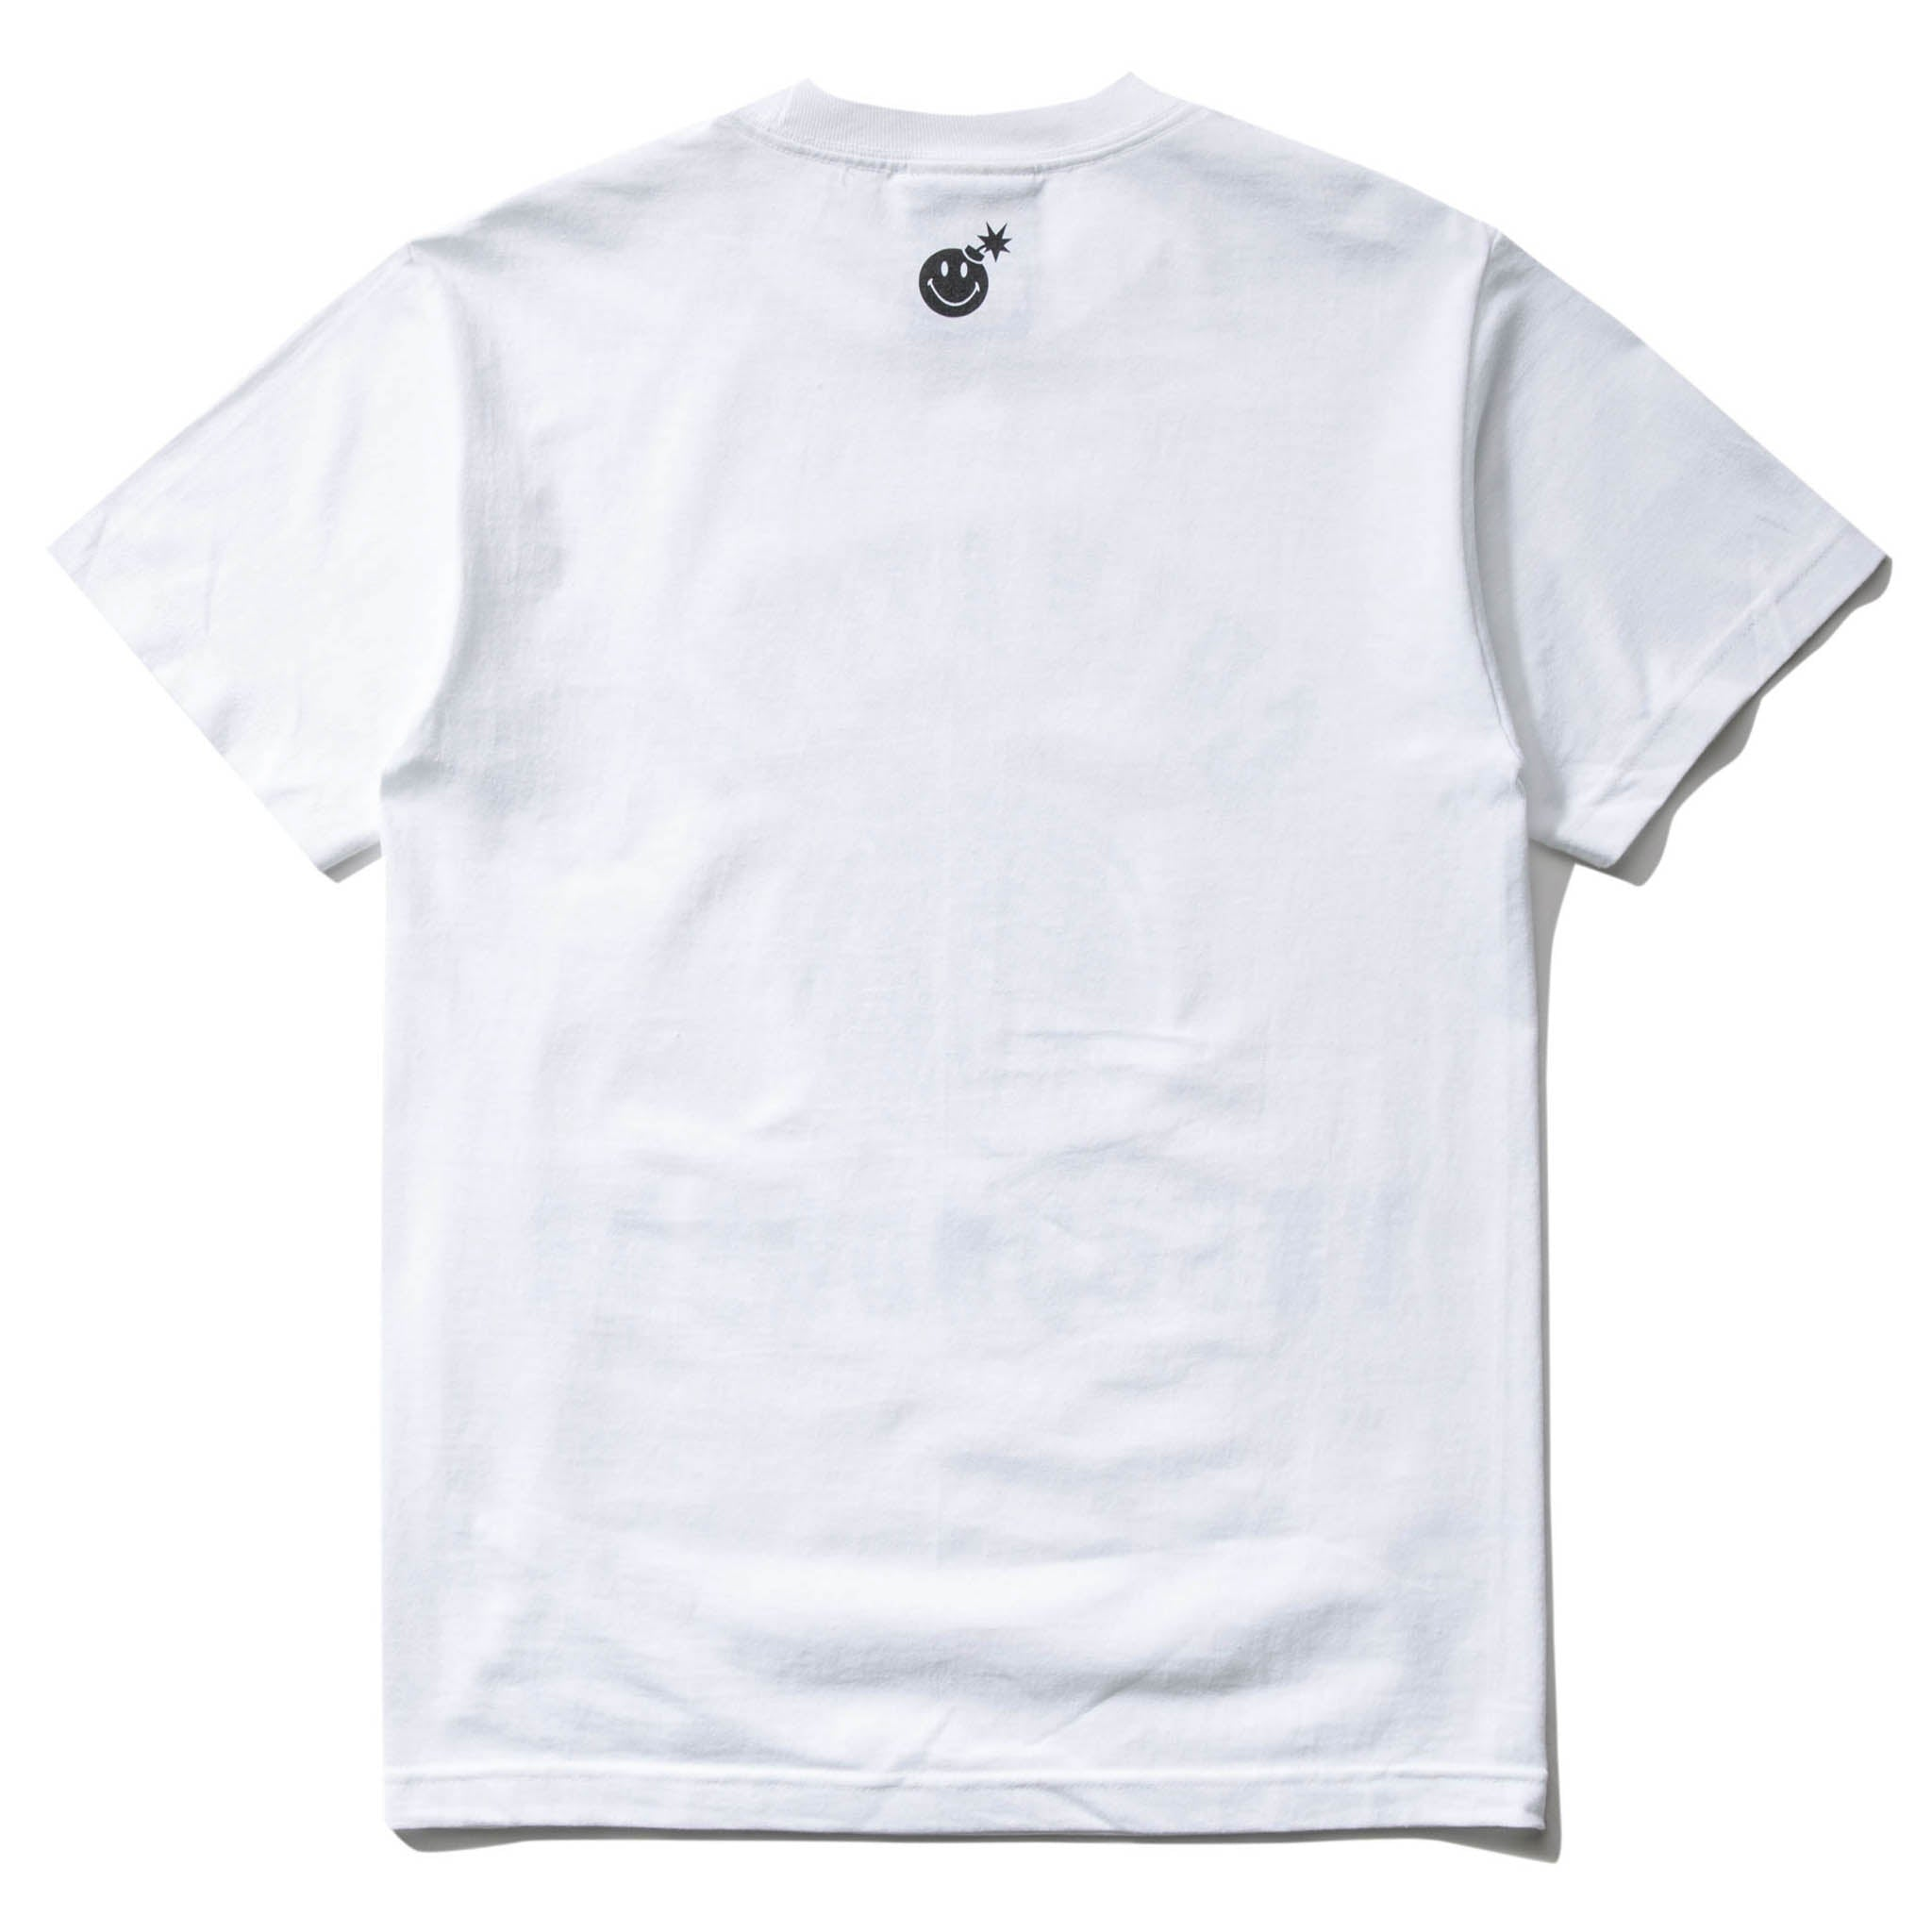 THE HUNDREDS x CTM HAPPY T-SHIRT (WHITE)